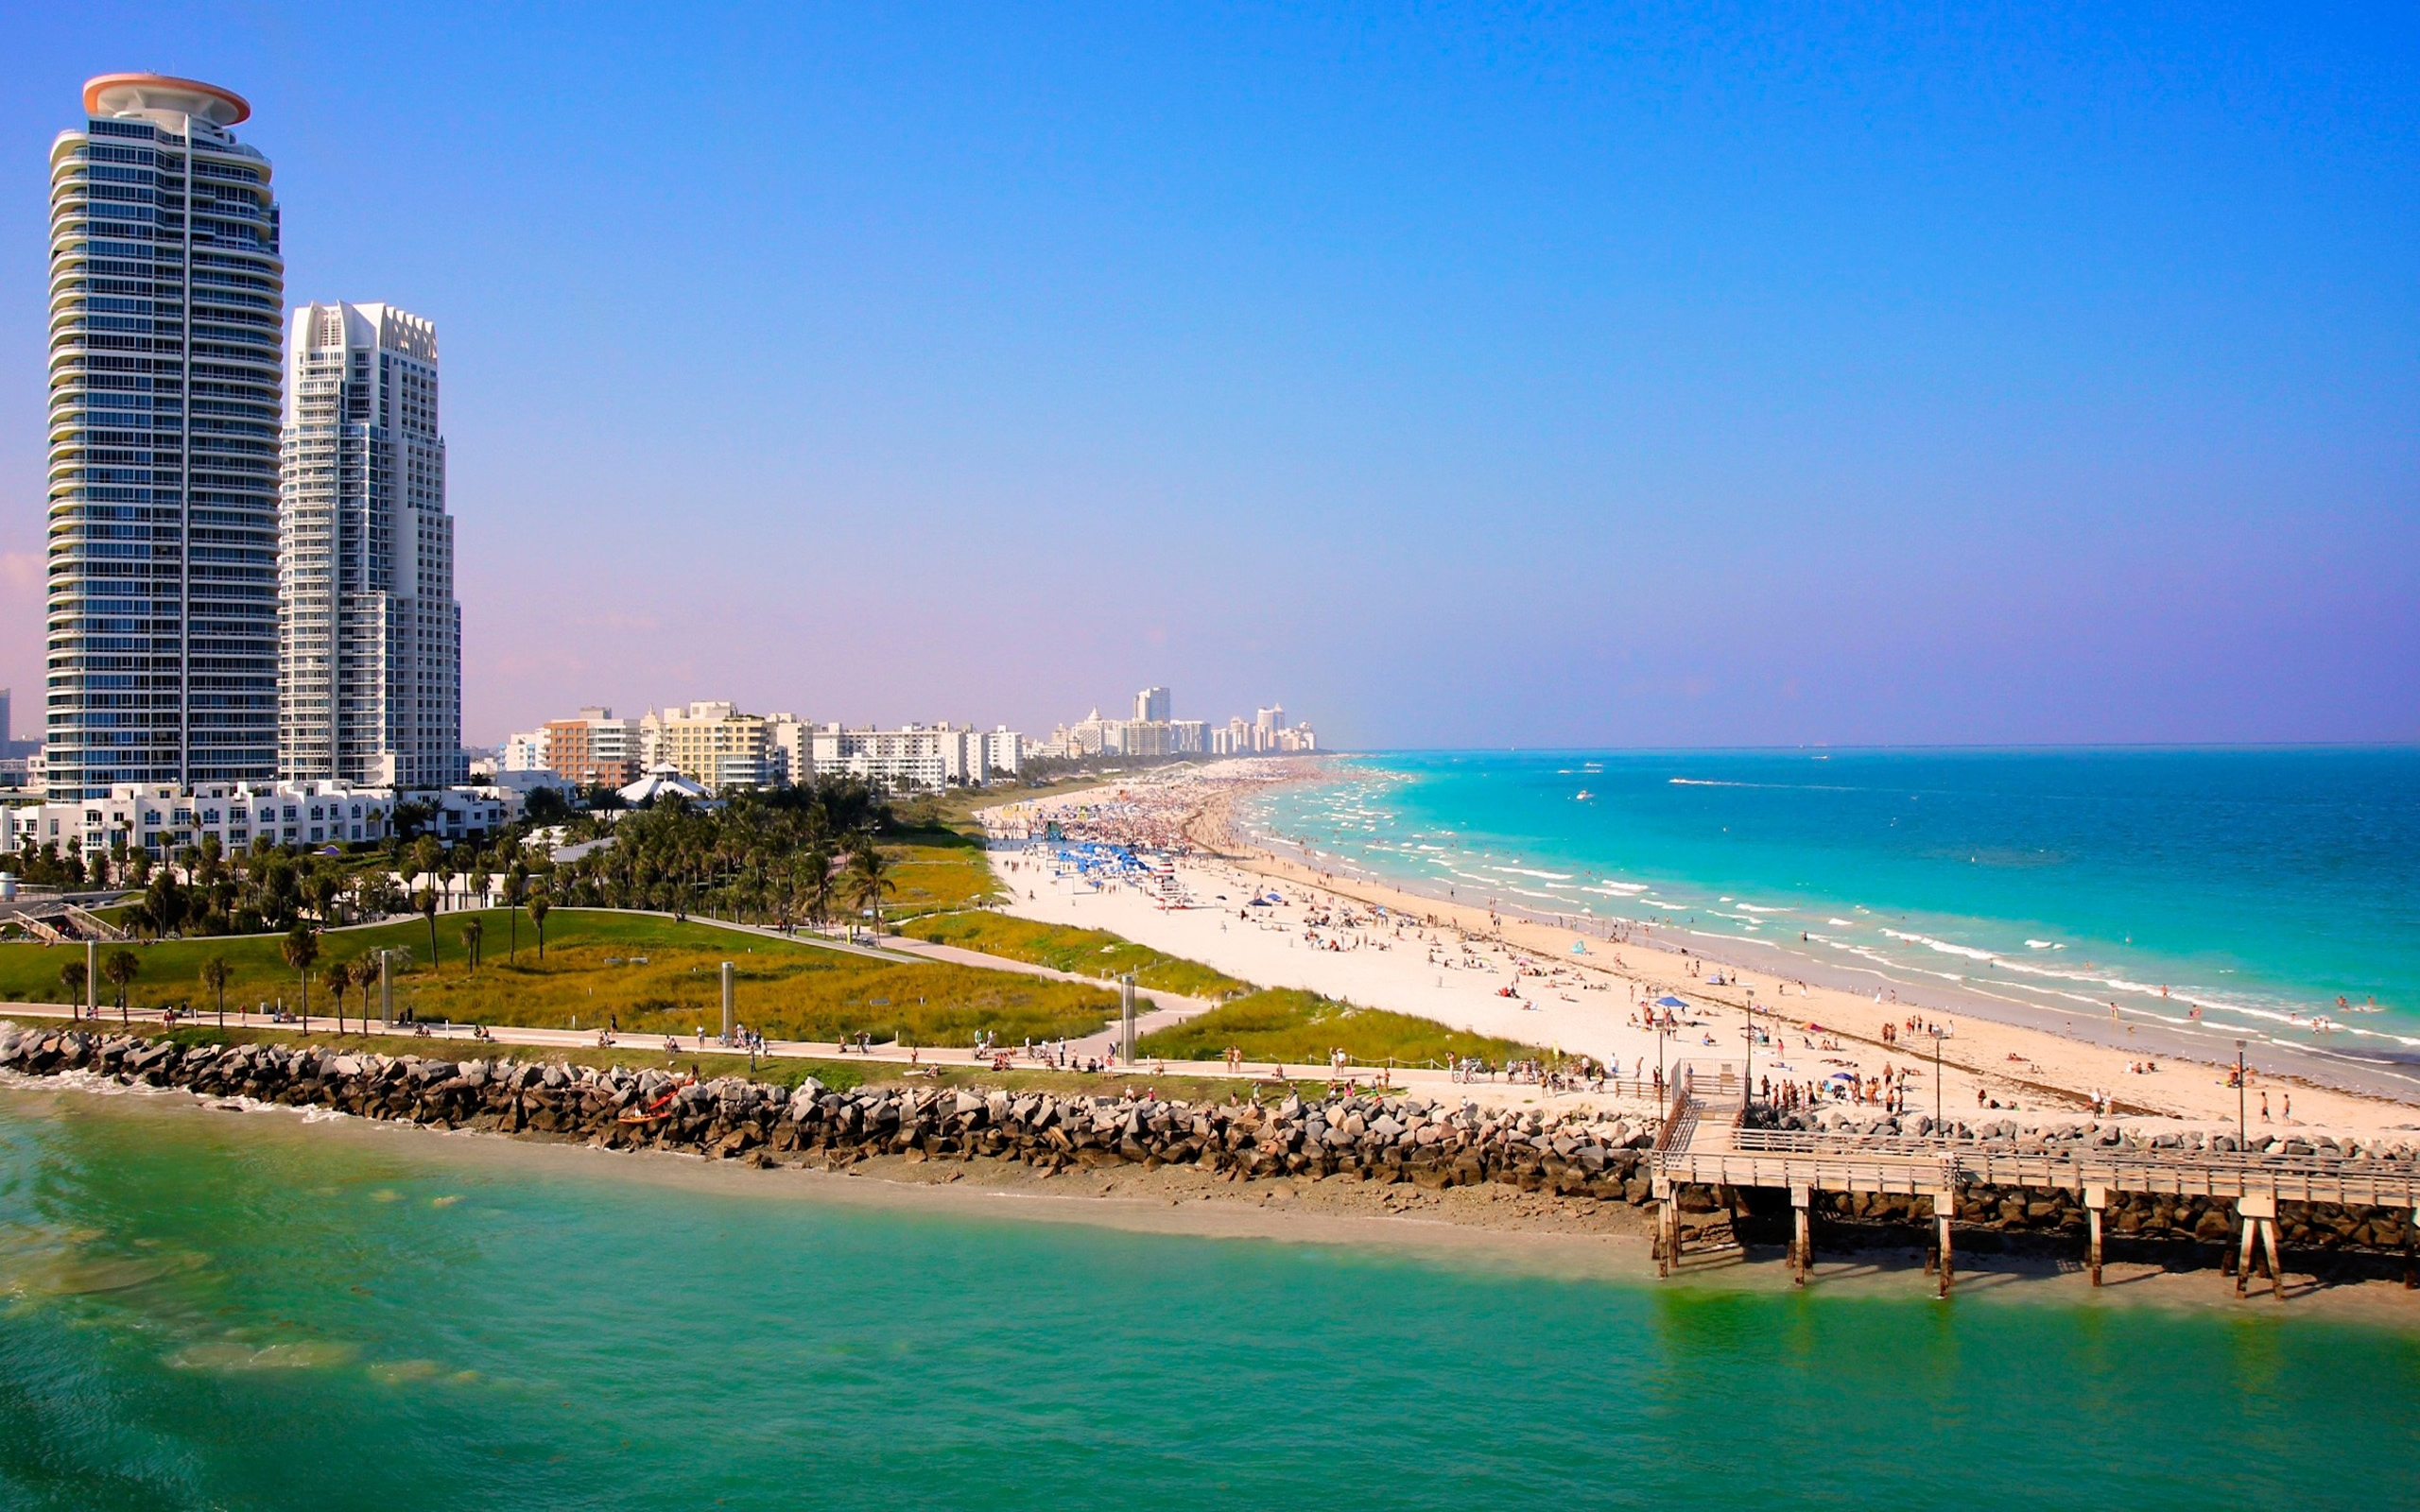 Miami Beach Florida City Wallpaper Widescreen 2560x1600